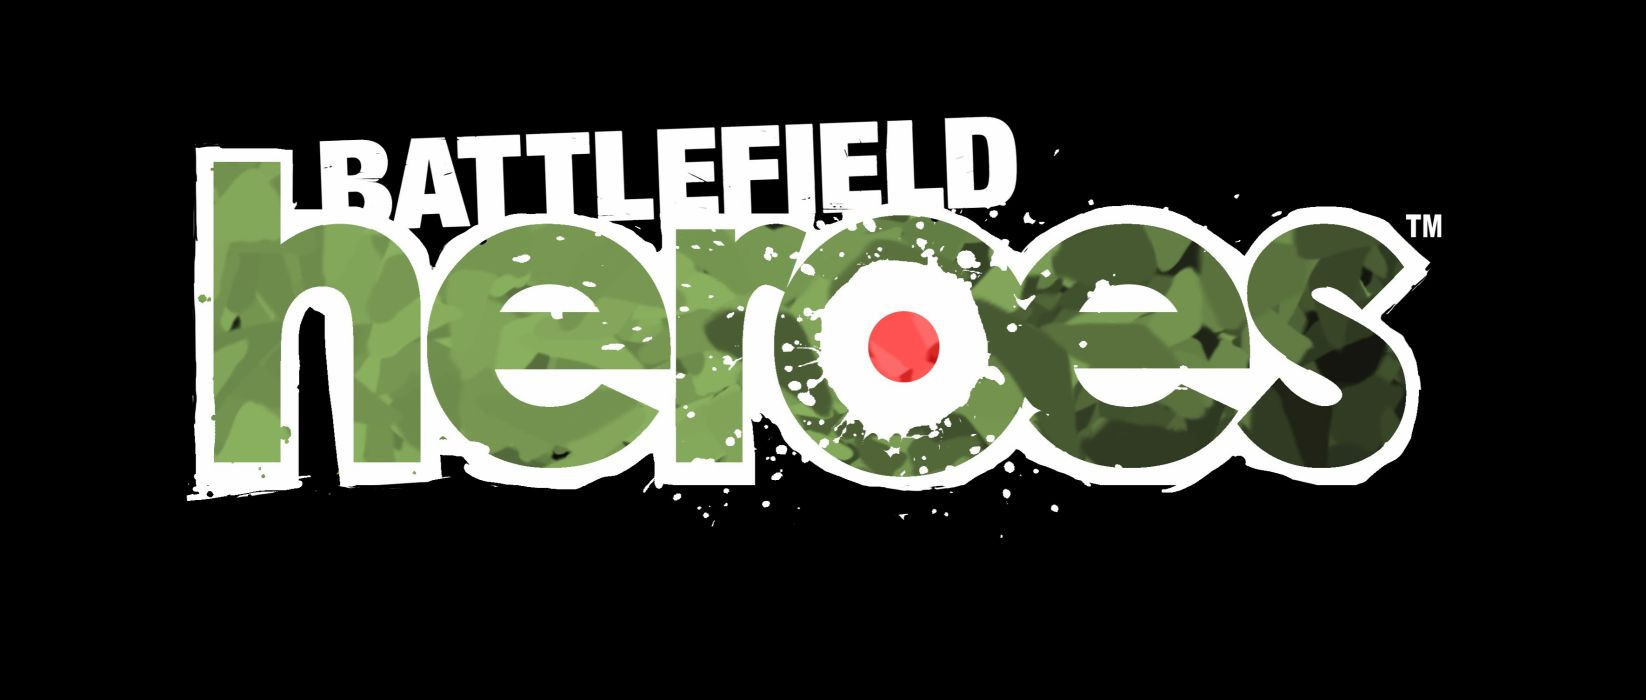 BATTLEFIELD HEROES military tps shooter action war 1bheroes sci-fi warrior wallpaper